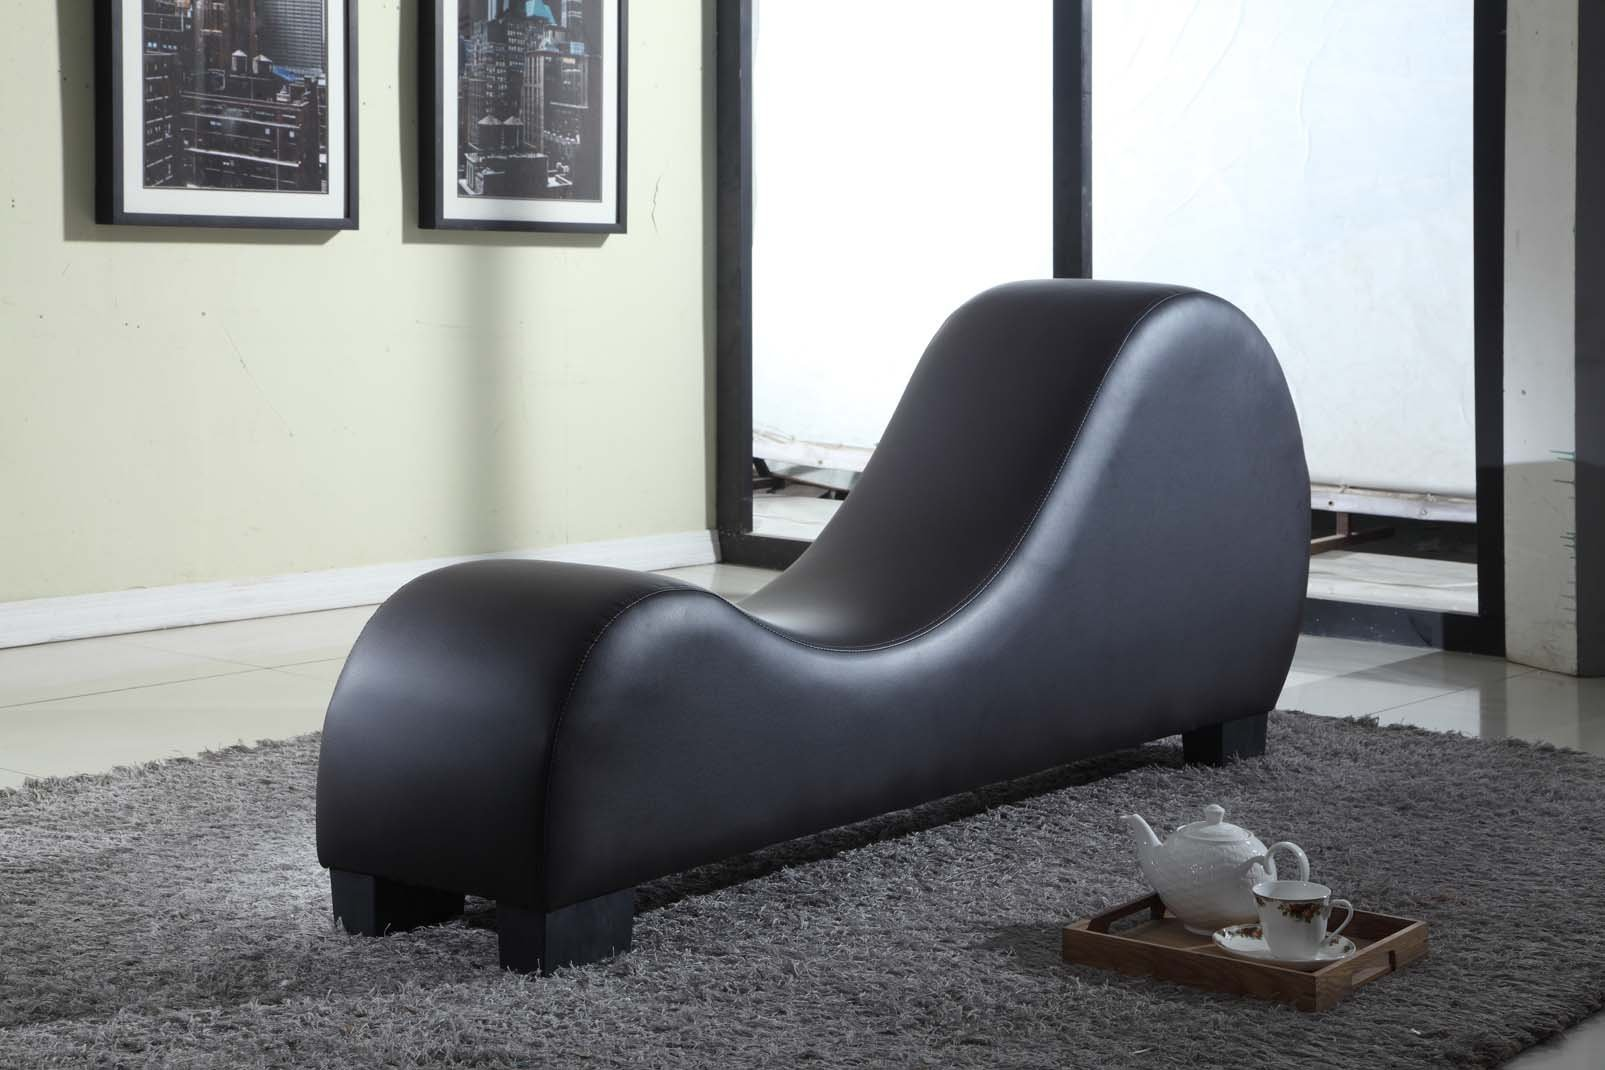 Container Direct 10 Container Furniture Direct Stretch Chaise Ultimate Faux Leather Curved Yoga and Lounge Chair, Black, Regular, by Container Direct